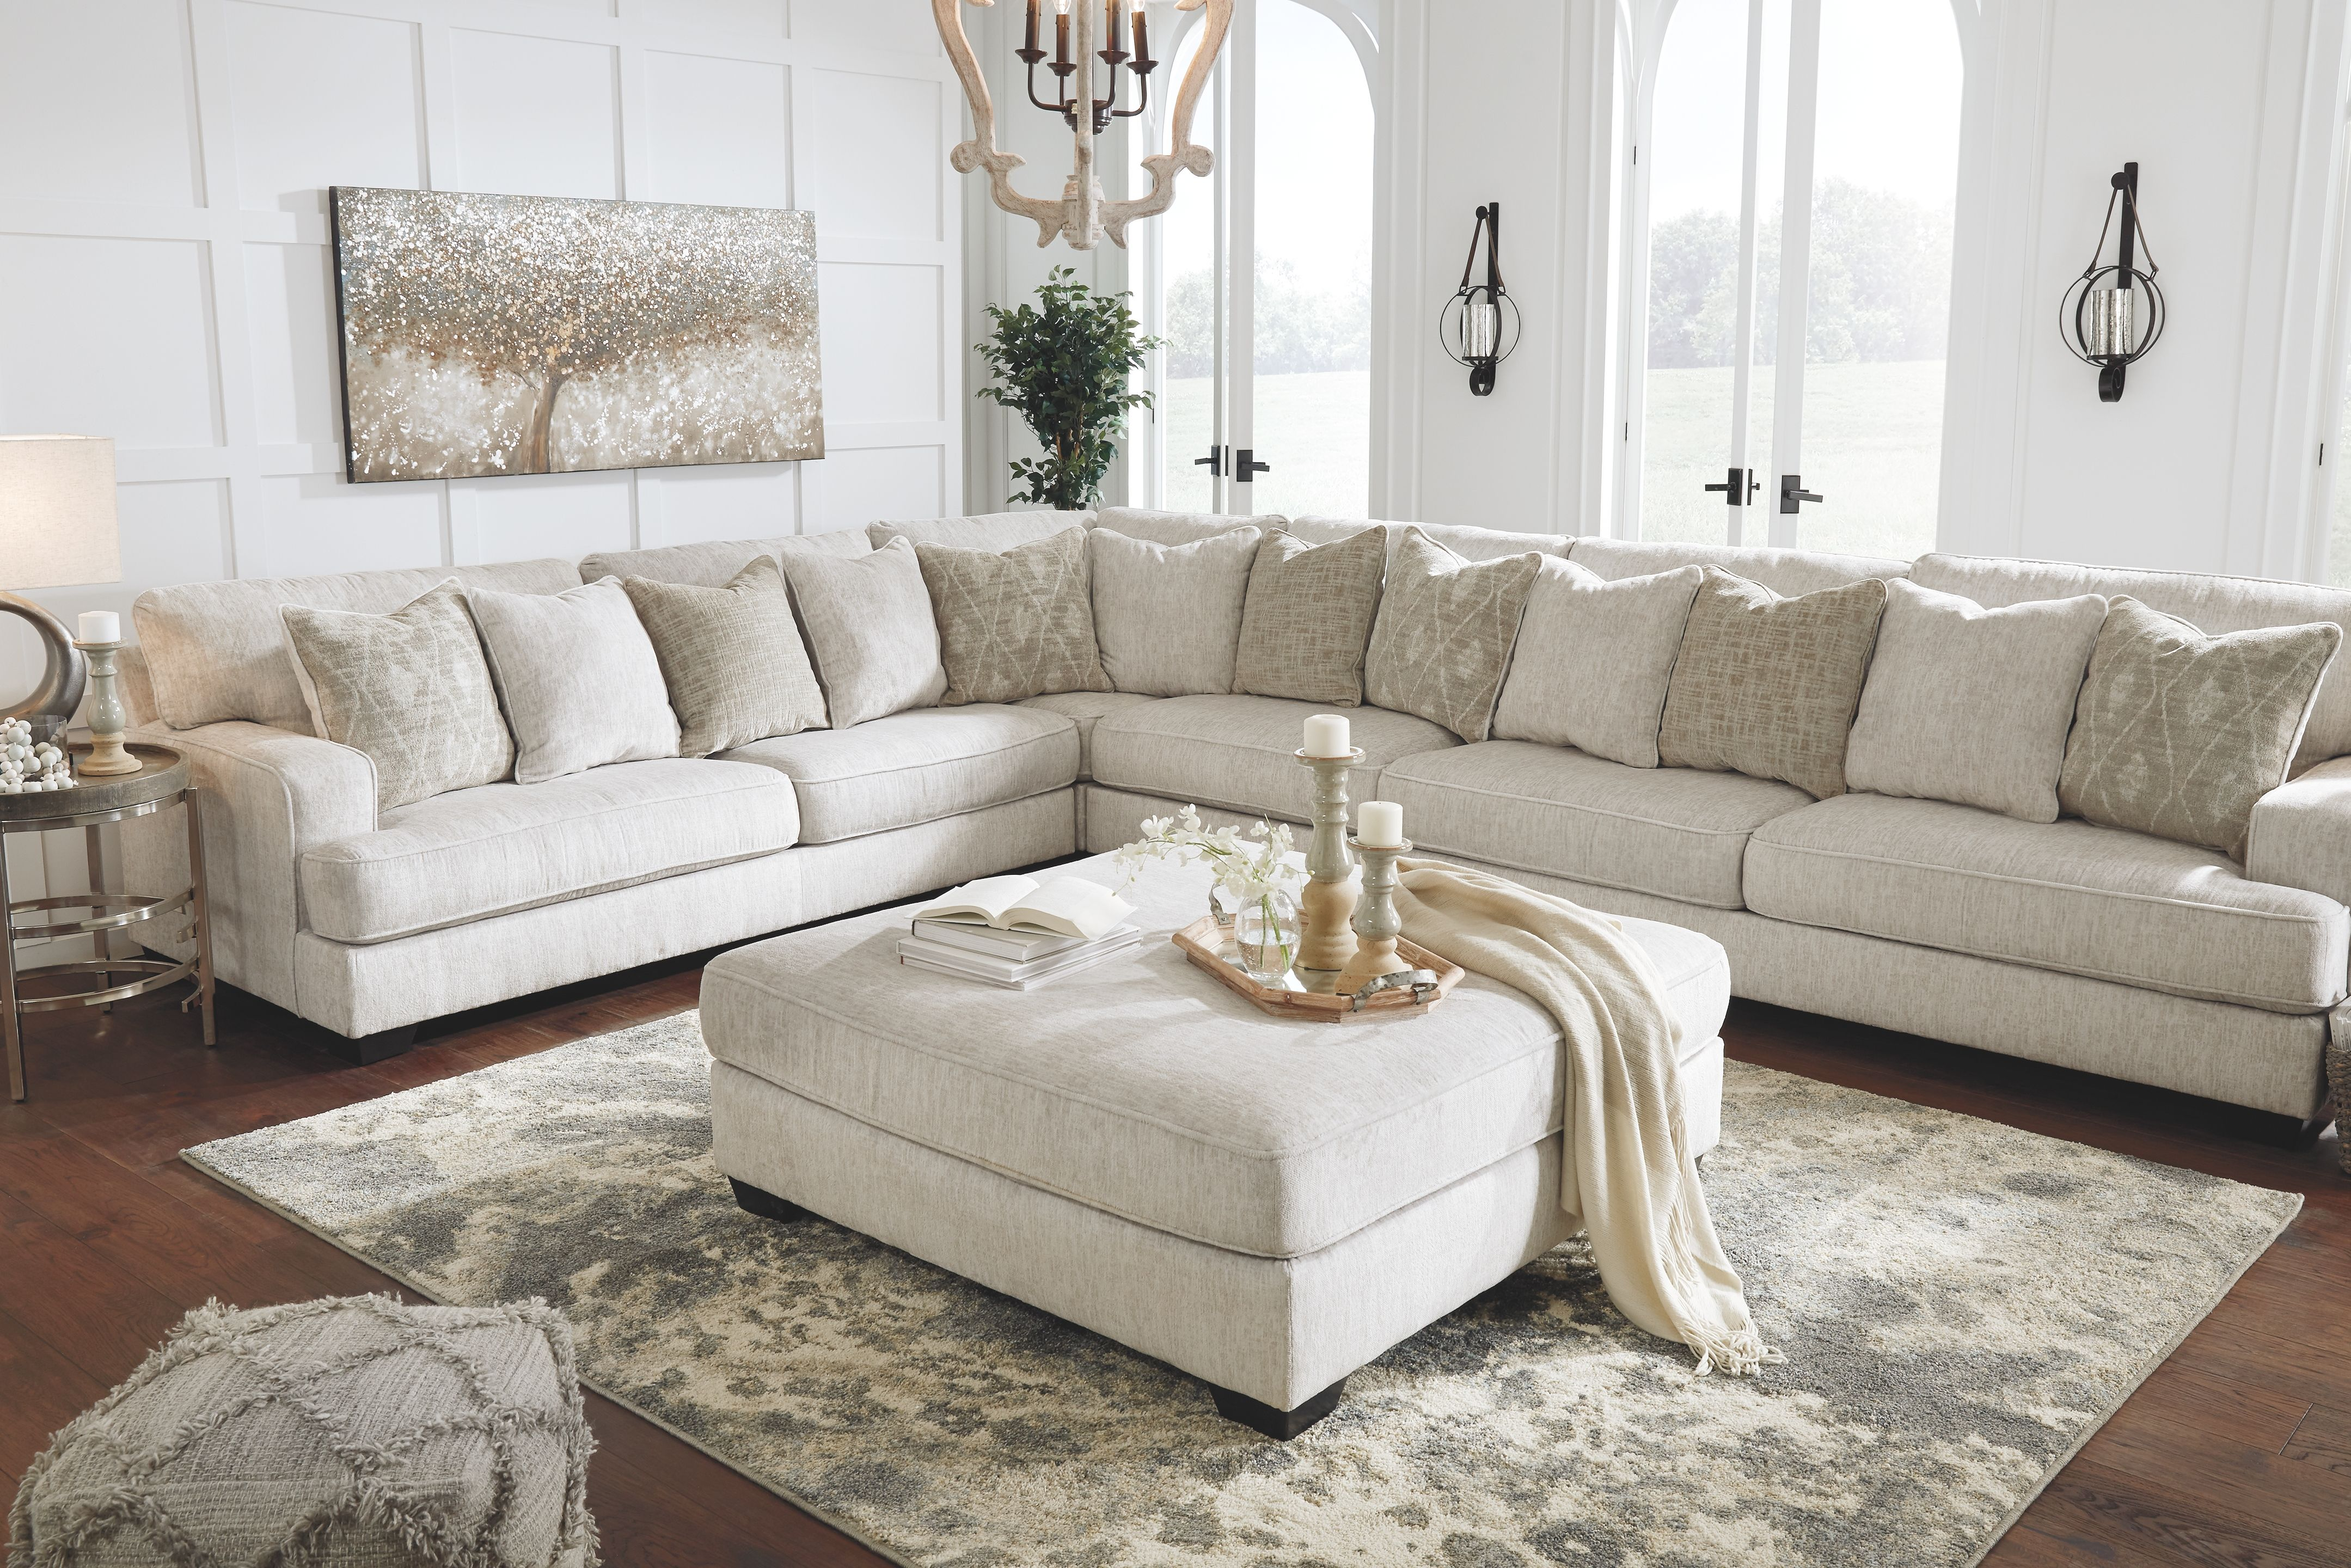 Rawcliffe Oversized Accent Ottoman In 2020 Sectional Living Room Layout Ashley Furniture Living Room Ottoman In Living Room #white #living #room #sectional